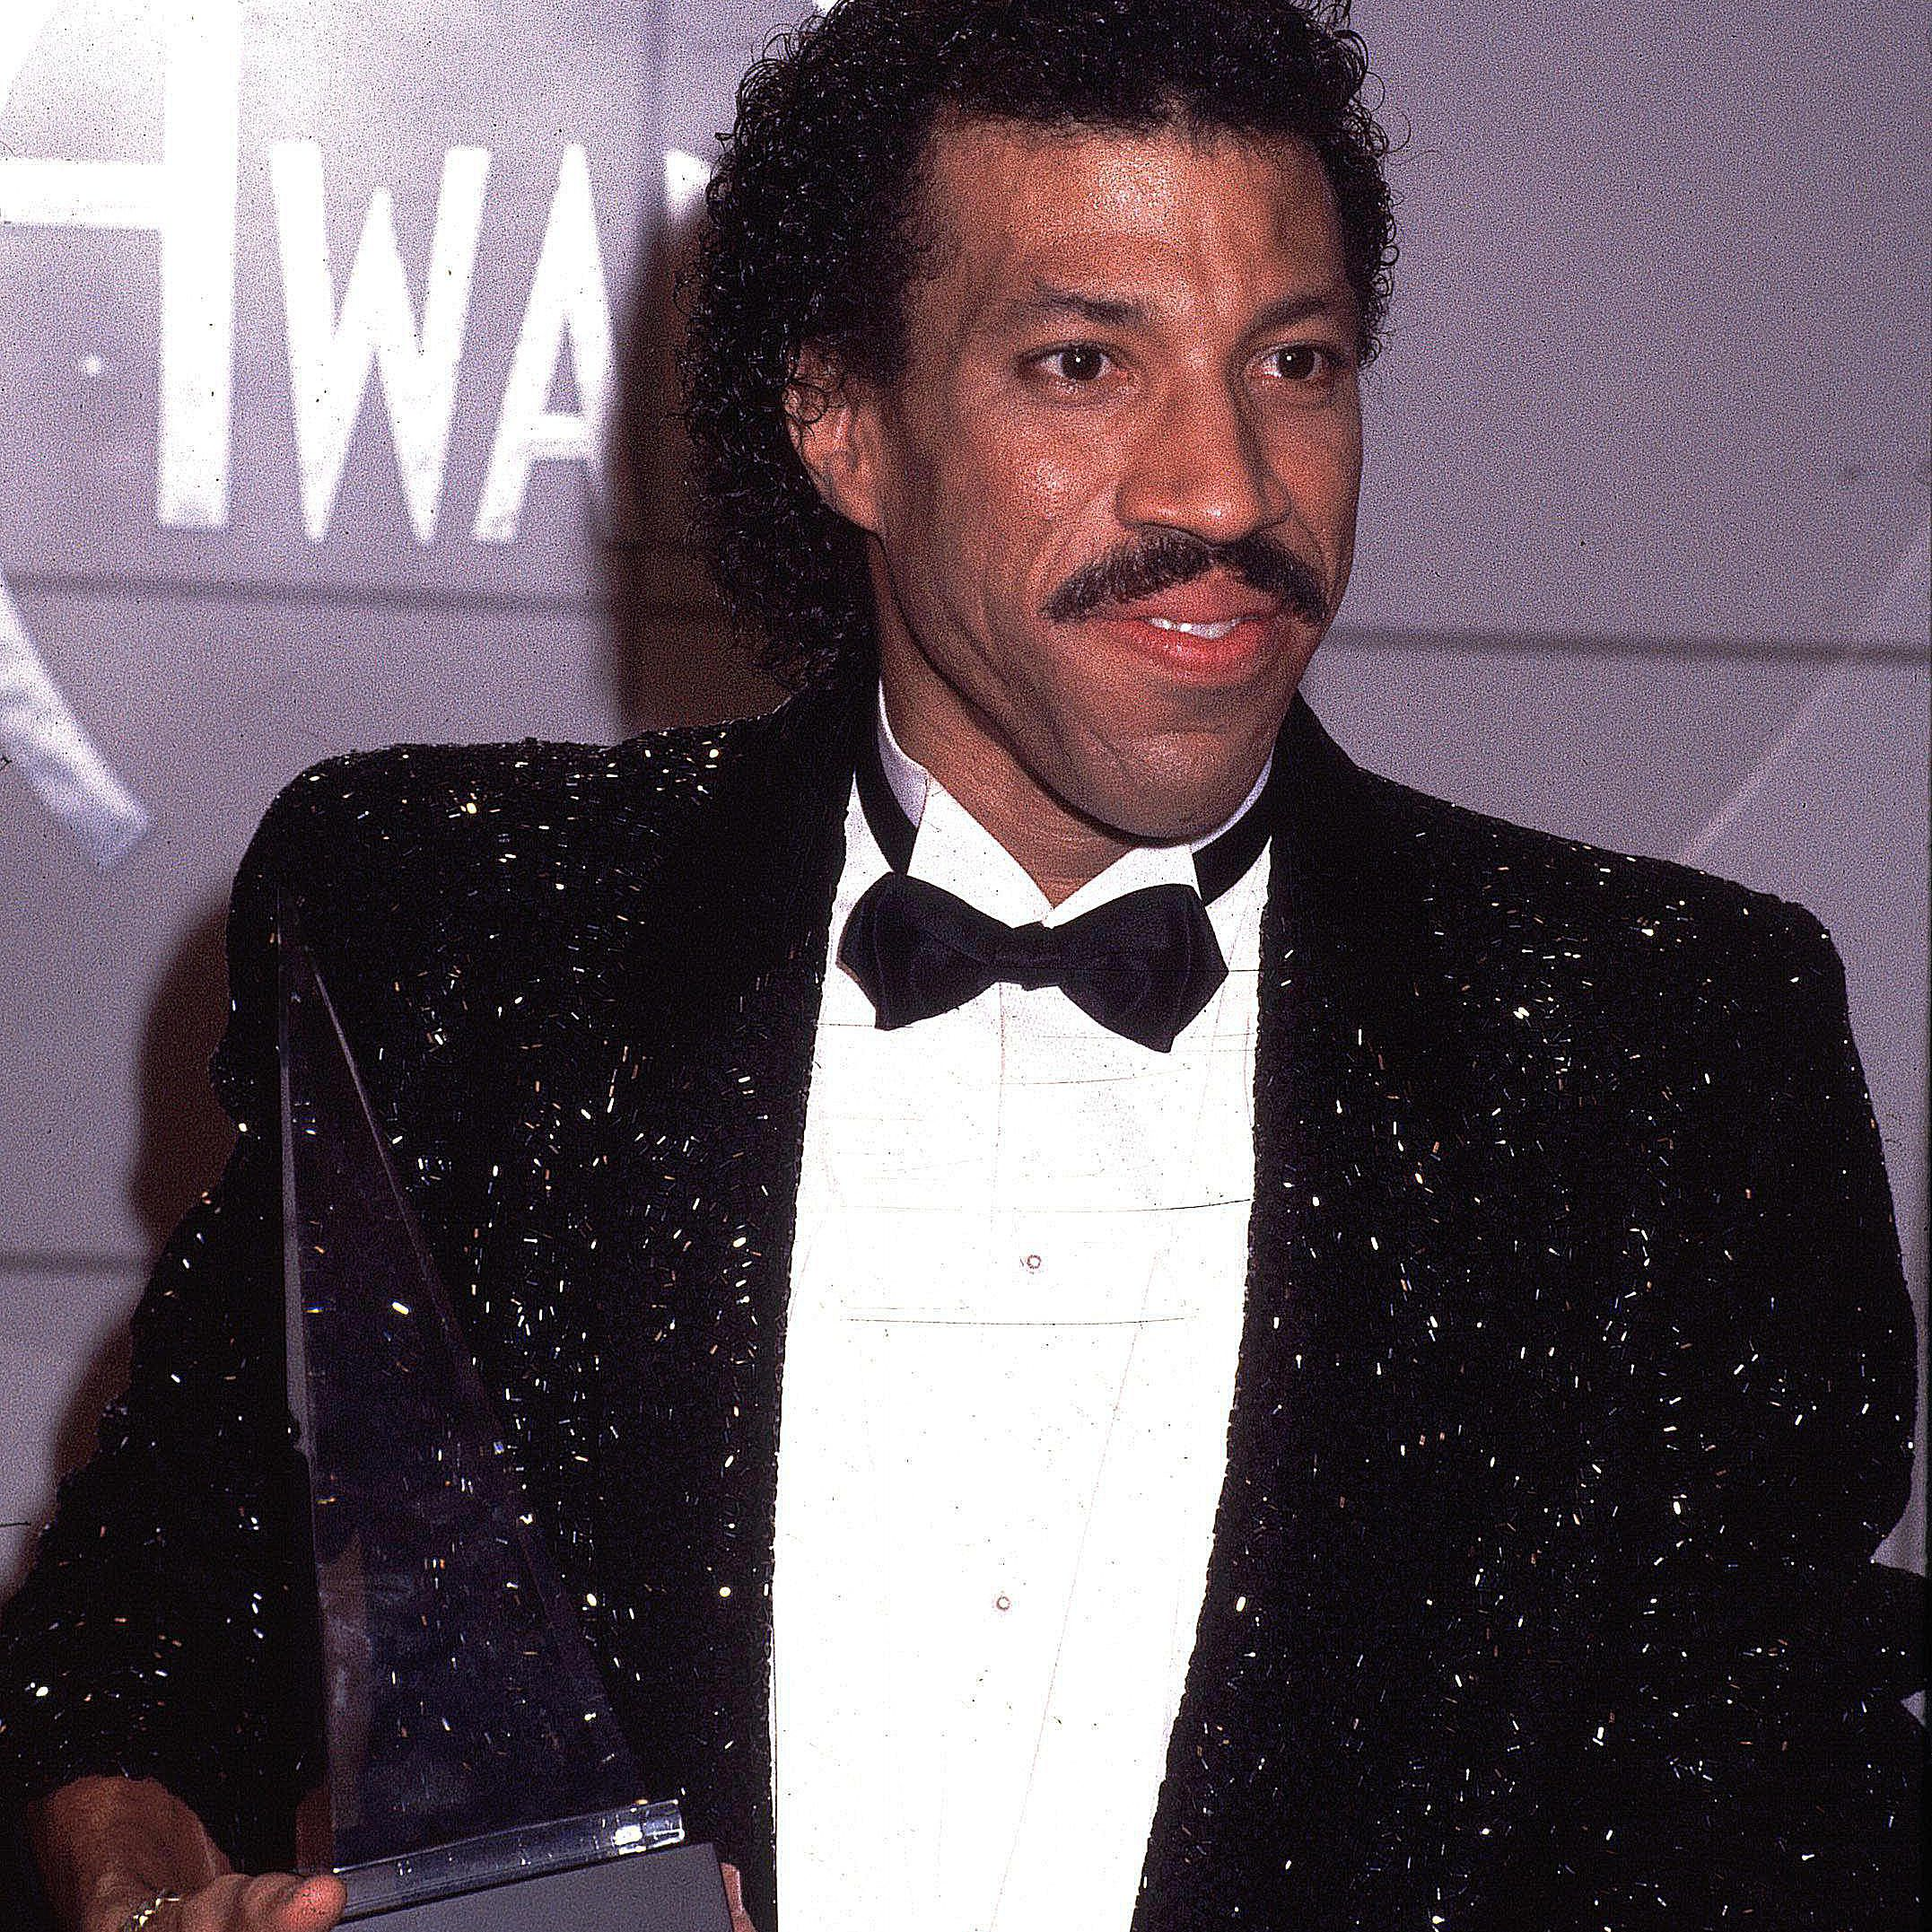 Lionel Richie posing with an award at the AMAs